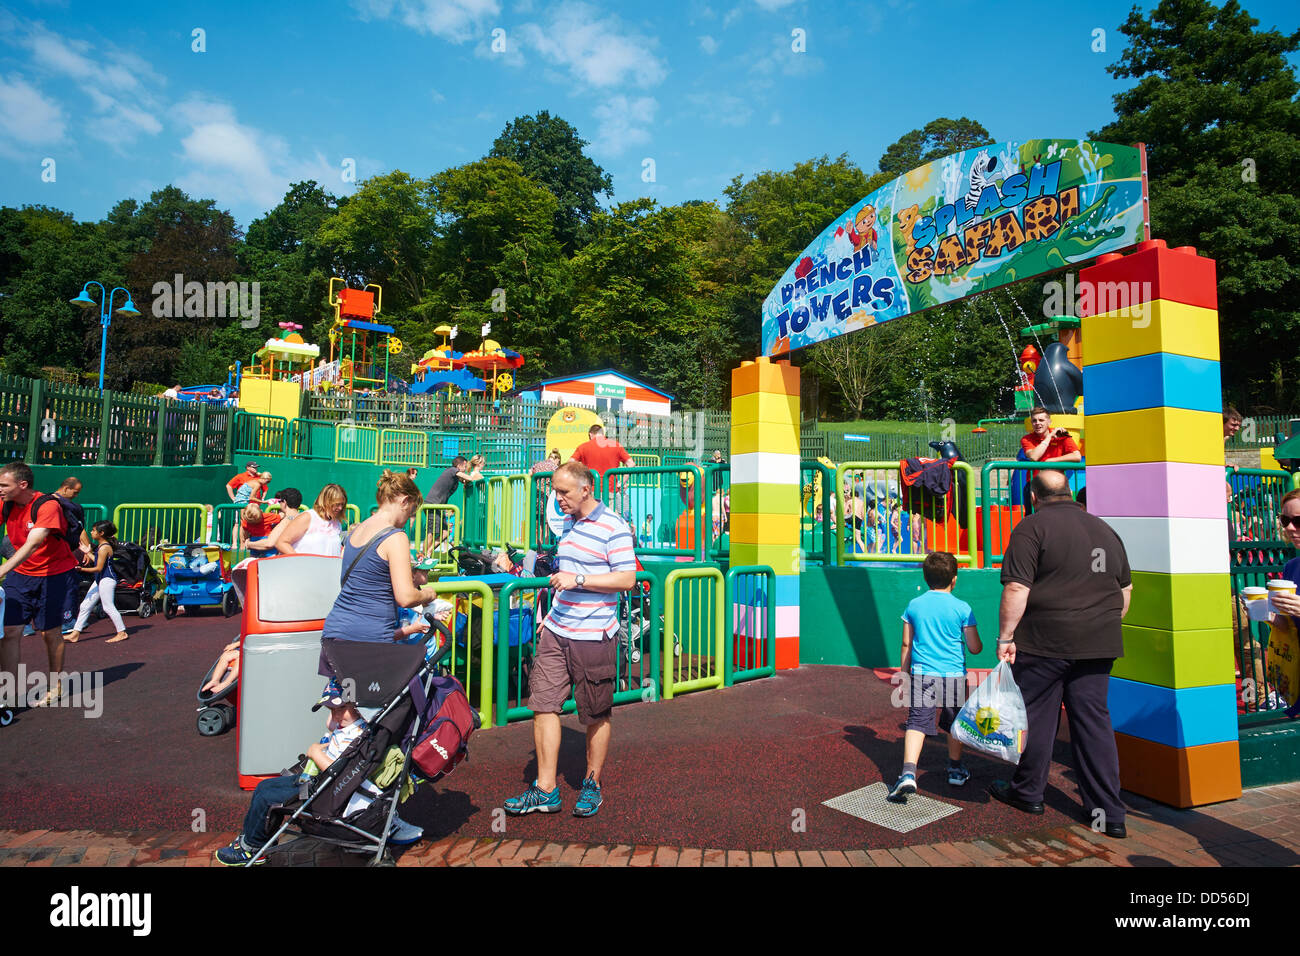 Entrance To Drench Towers & Splash Safari Opened in 2013 Legoland Windsor UK Stock Photo